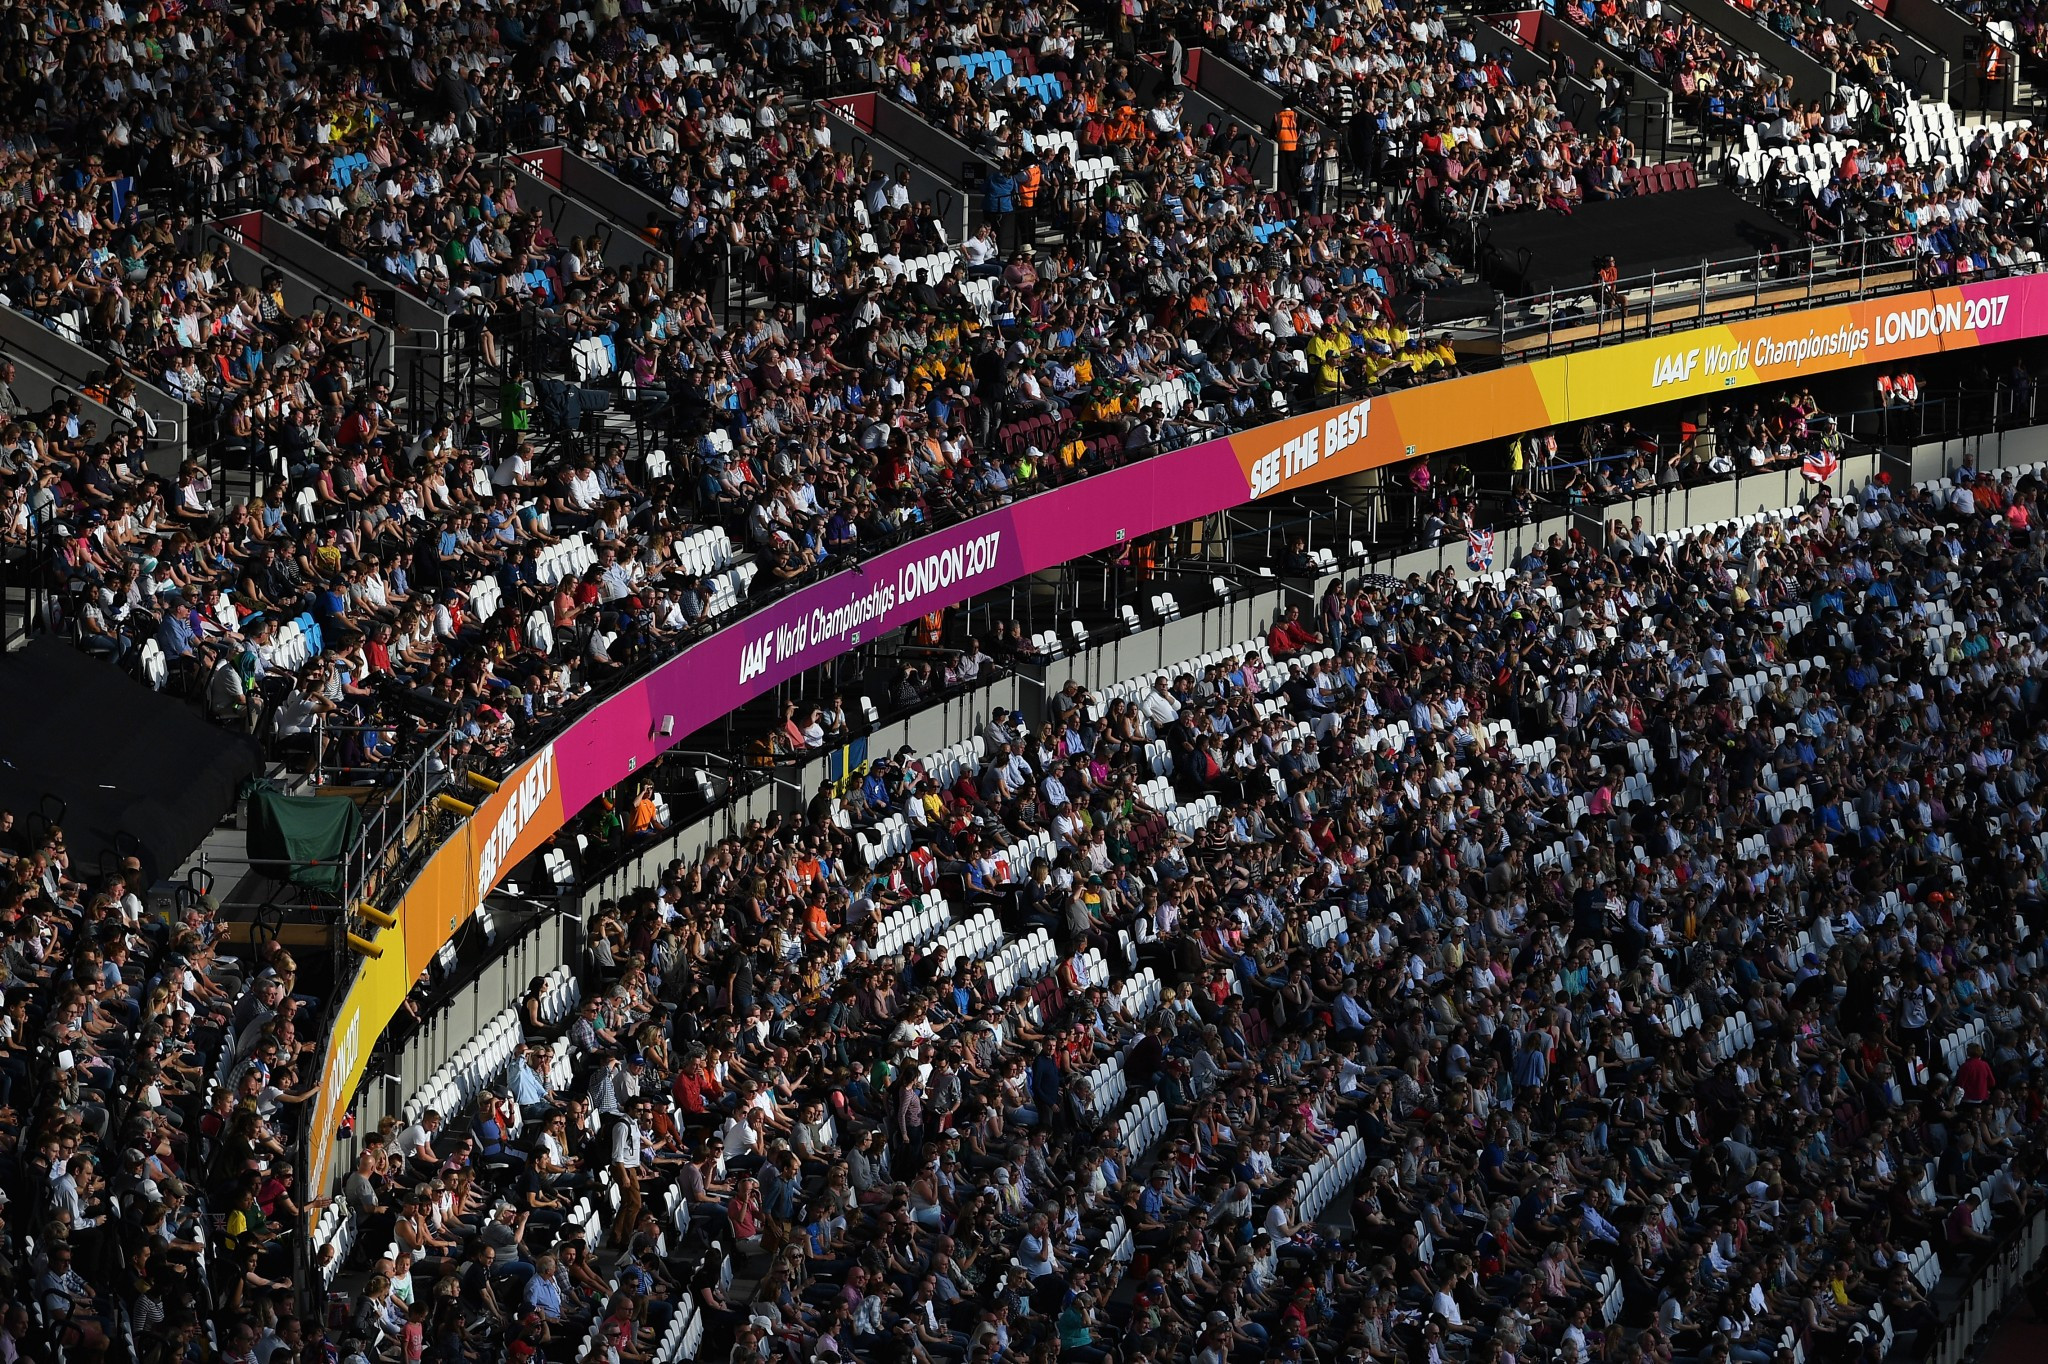 Every day of competition has been watched by a huge crowd inside the Olympic Stadium ©Getty Images